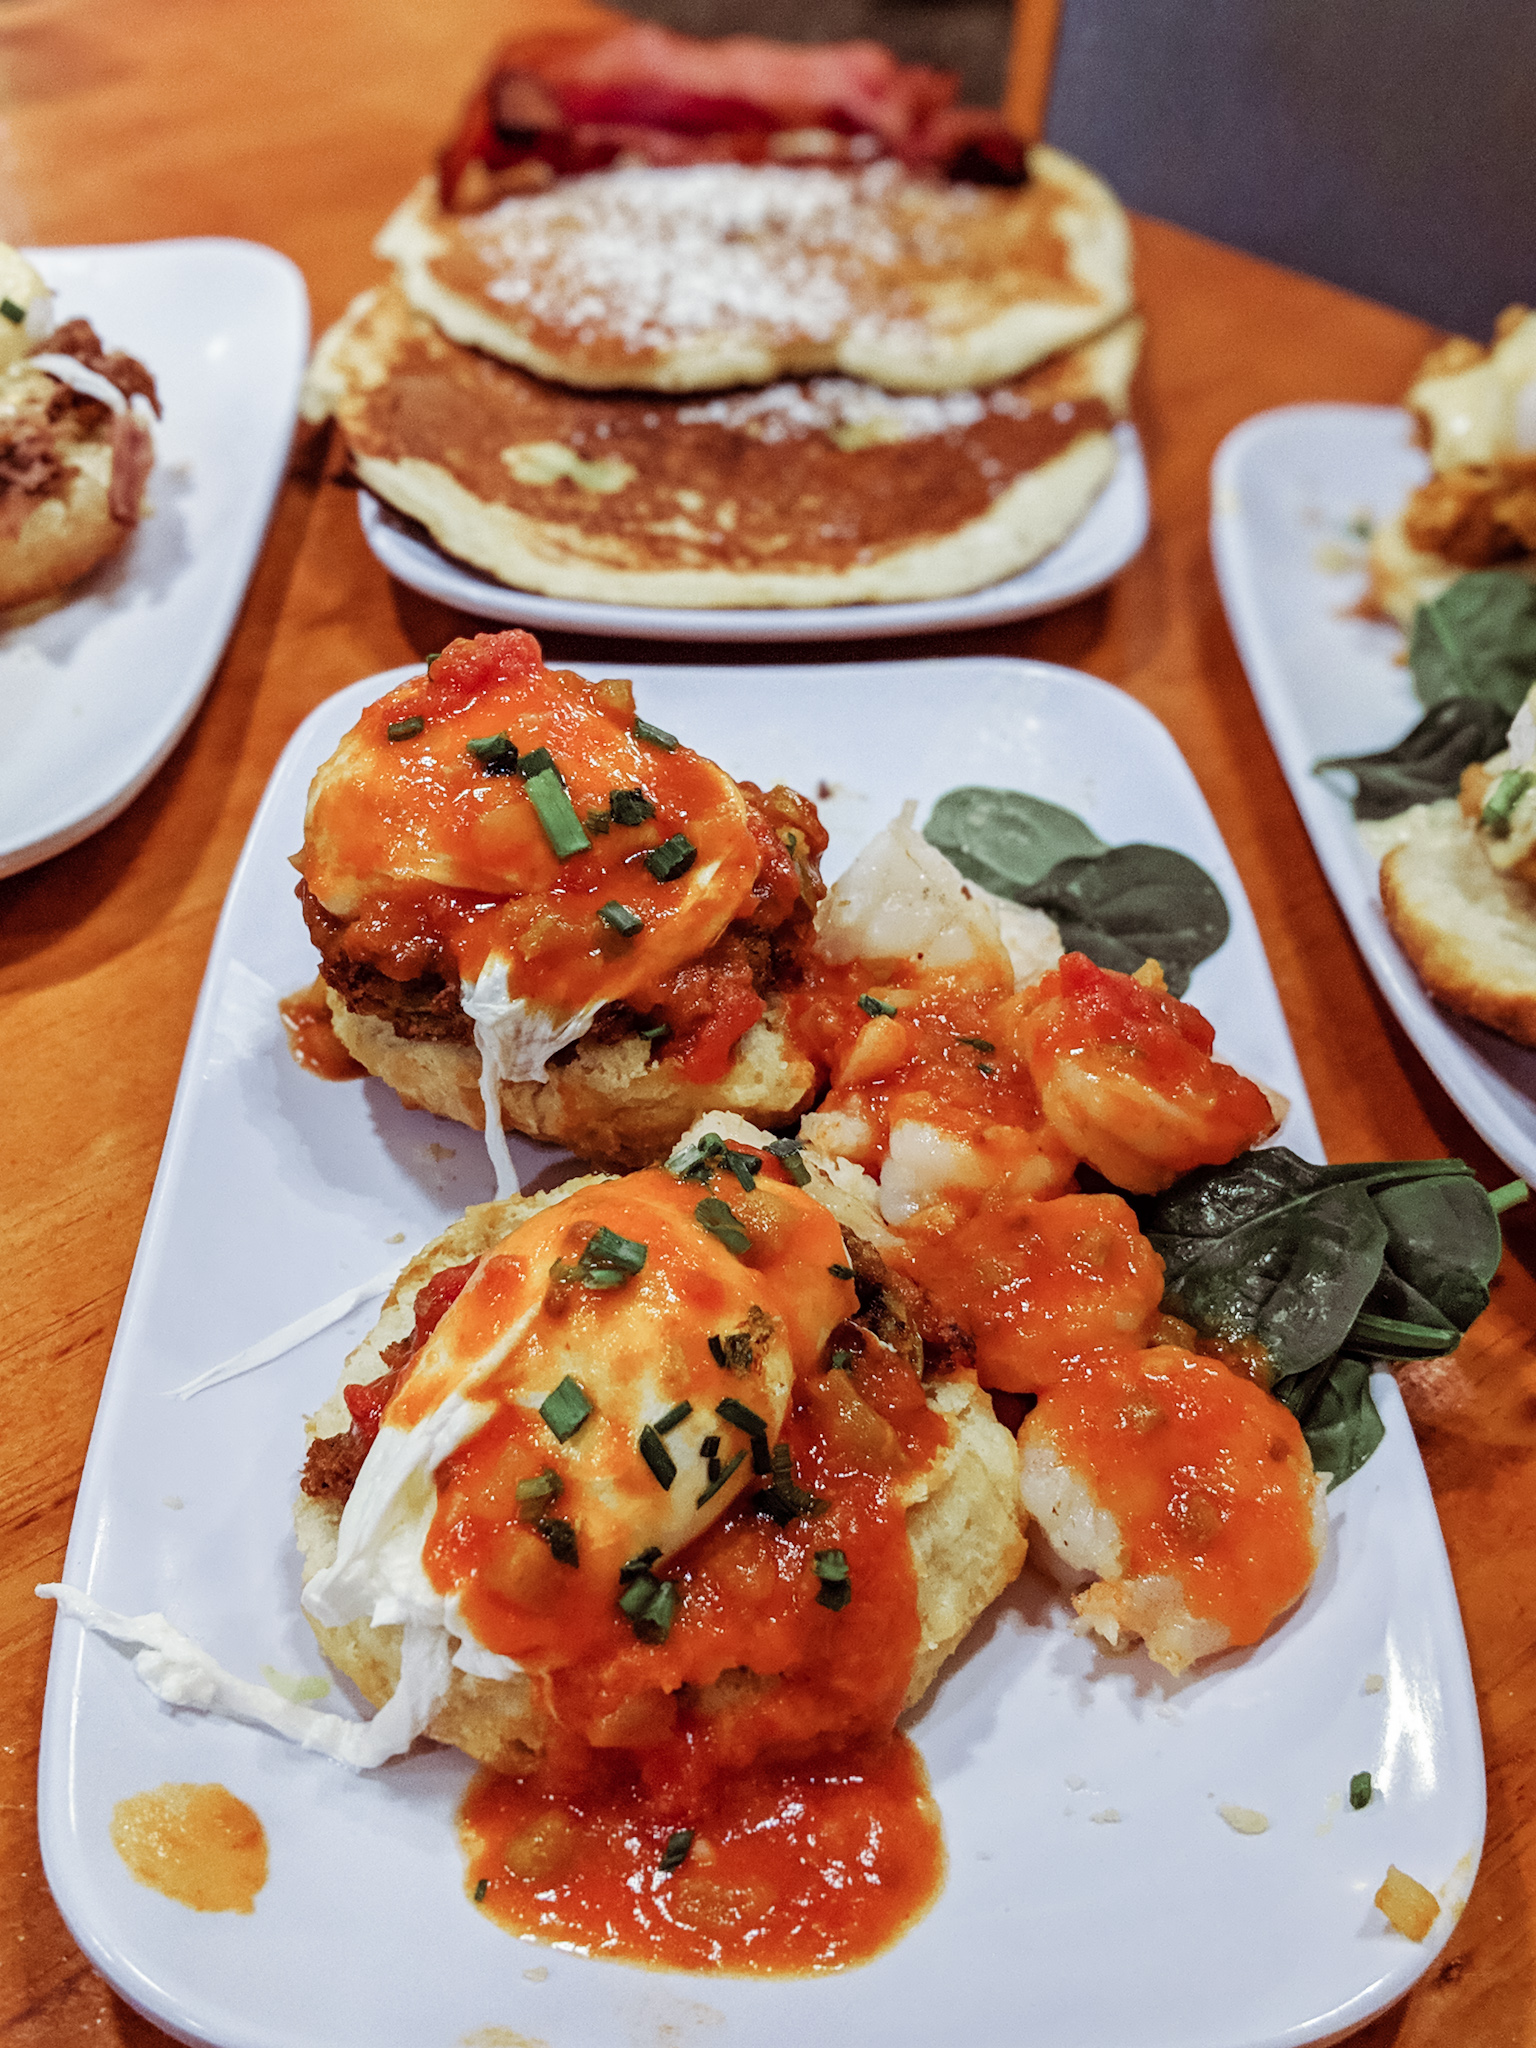 SHRIMP BOOGALOO BENEDICT: Gulf shrimp sauteed with pork tasso and creole tomato sauce served over fried green tomatoes, a buttermilk biscuit and two poached eggs